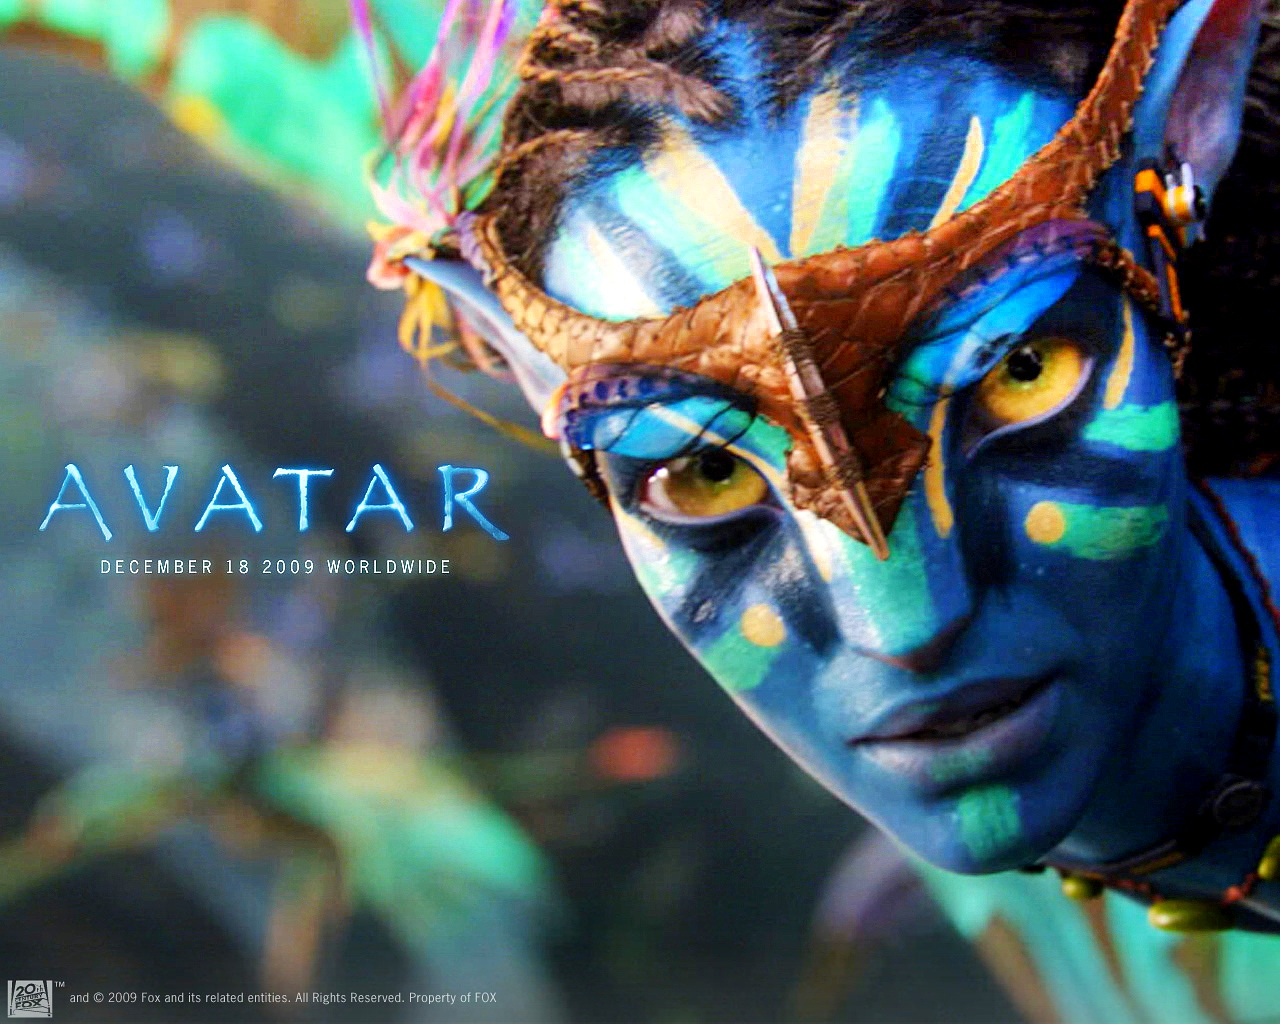 avatar wallpaper HD bonjoviarchives 1280x1024